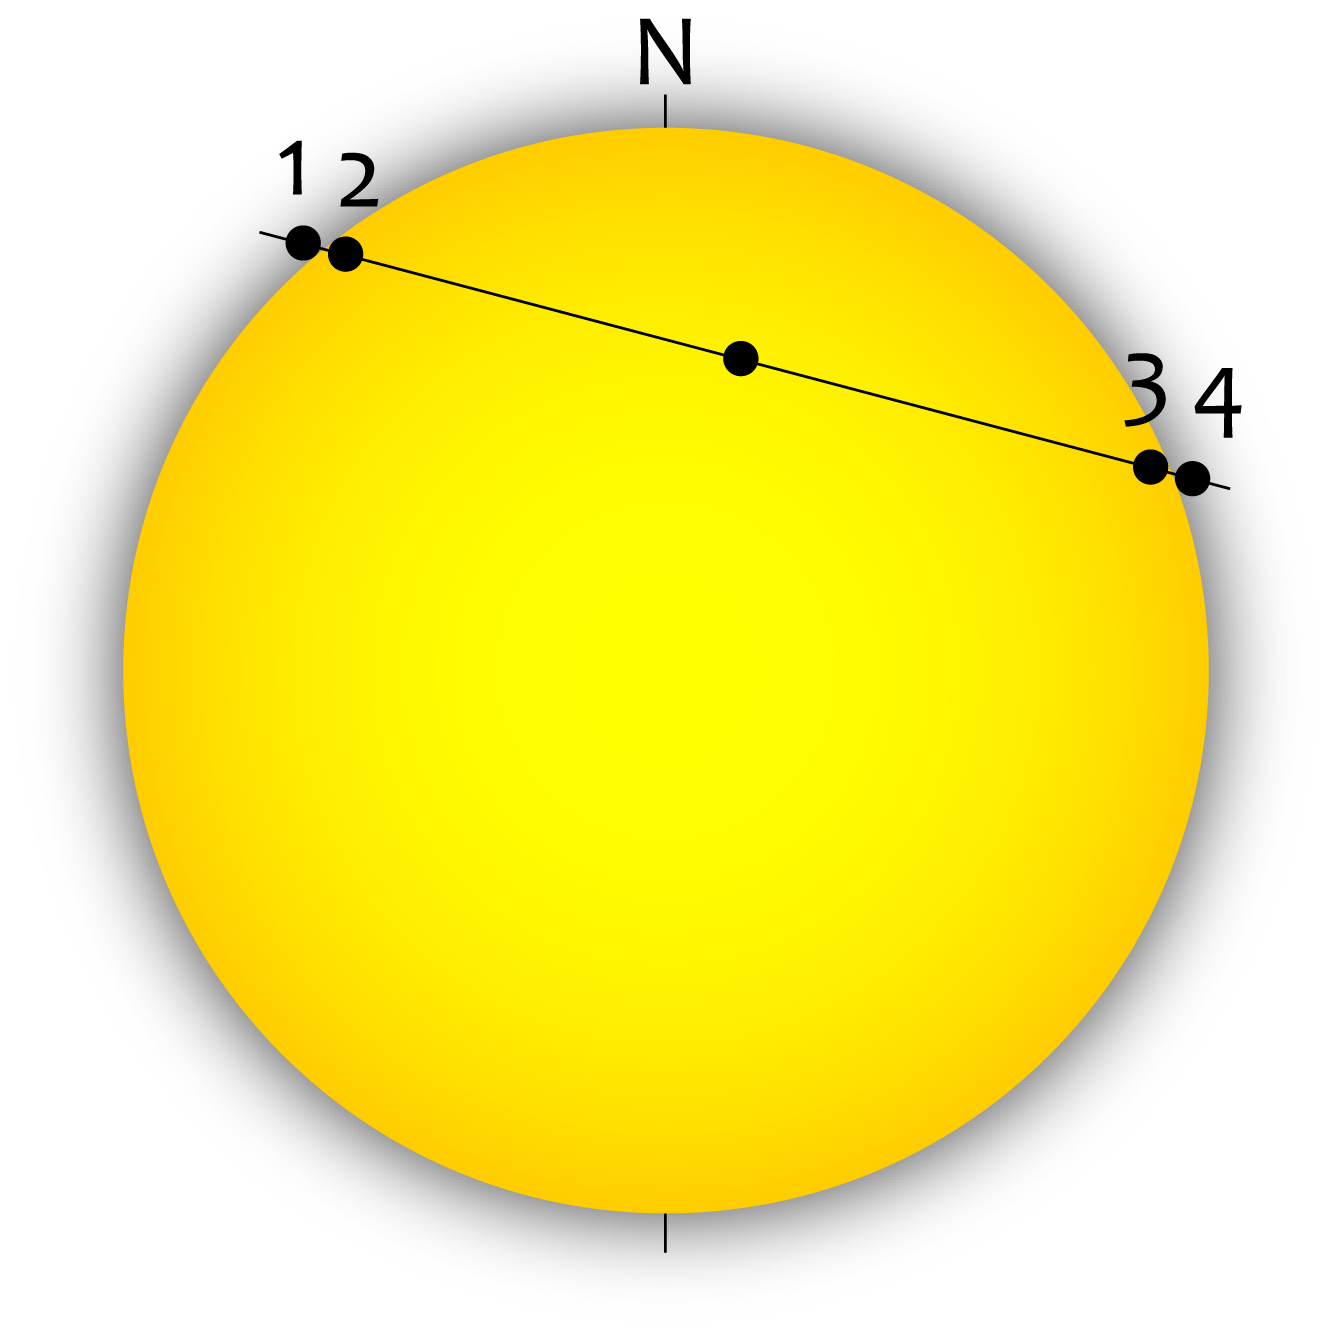 Key phases during a transit of a planet across the face of the Sun are often referred to as 1st, 2nd, 3rd and 4th contact. Credit: Michael Zeiler, eclipse-maps.com